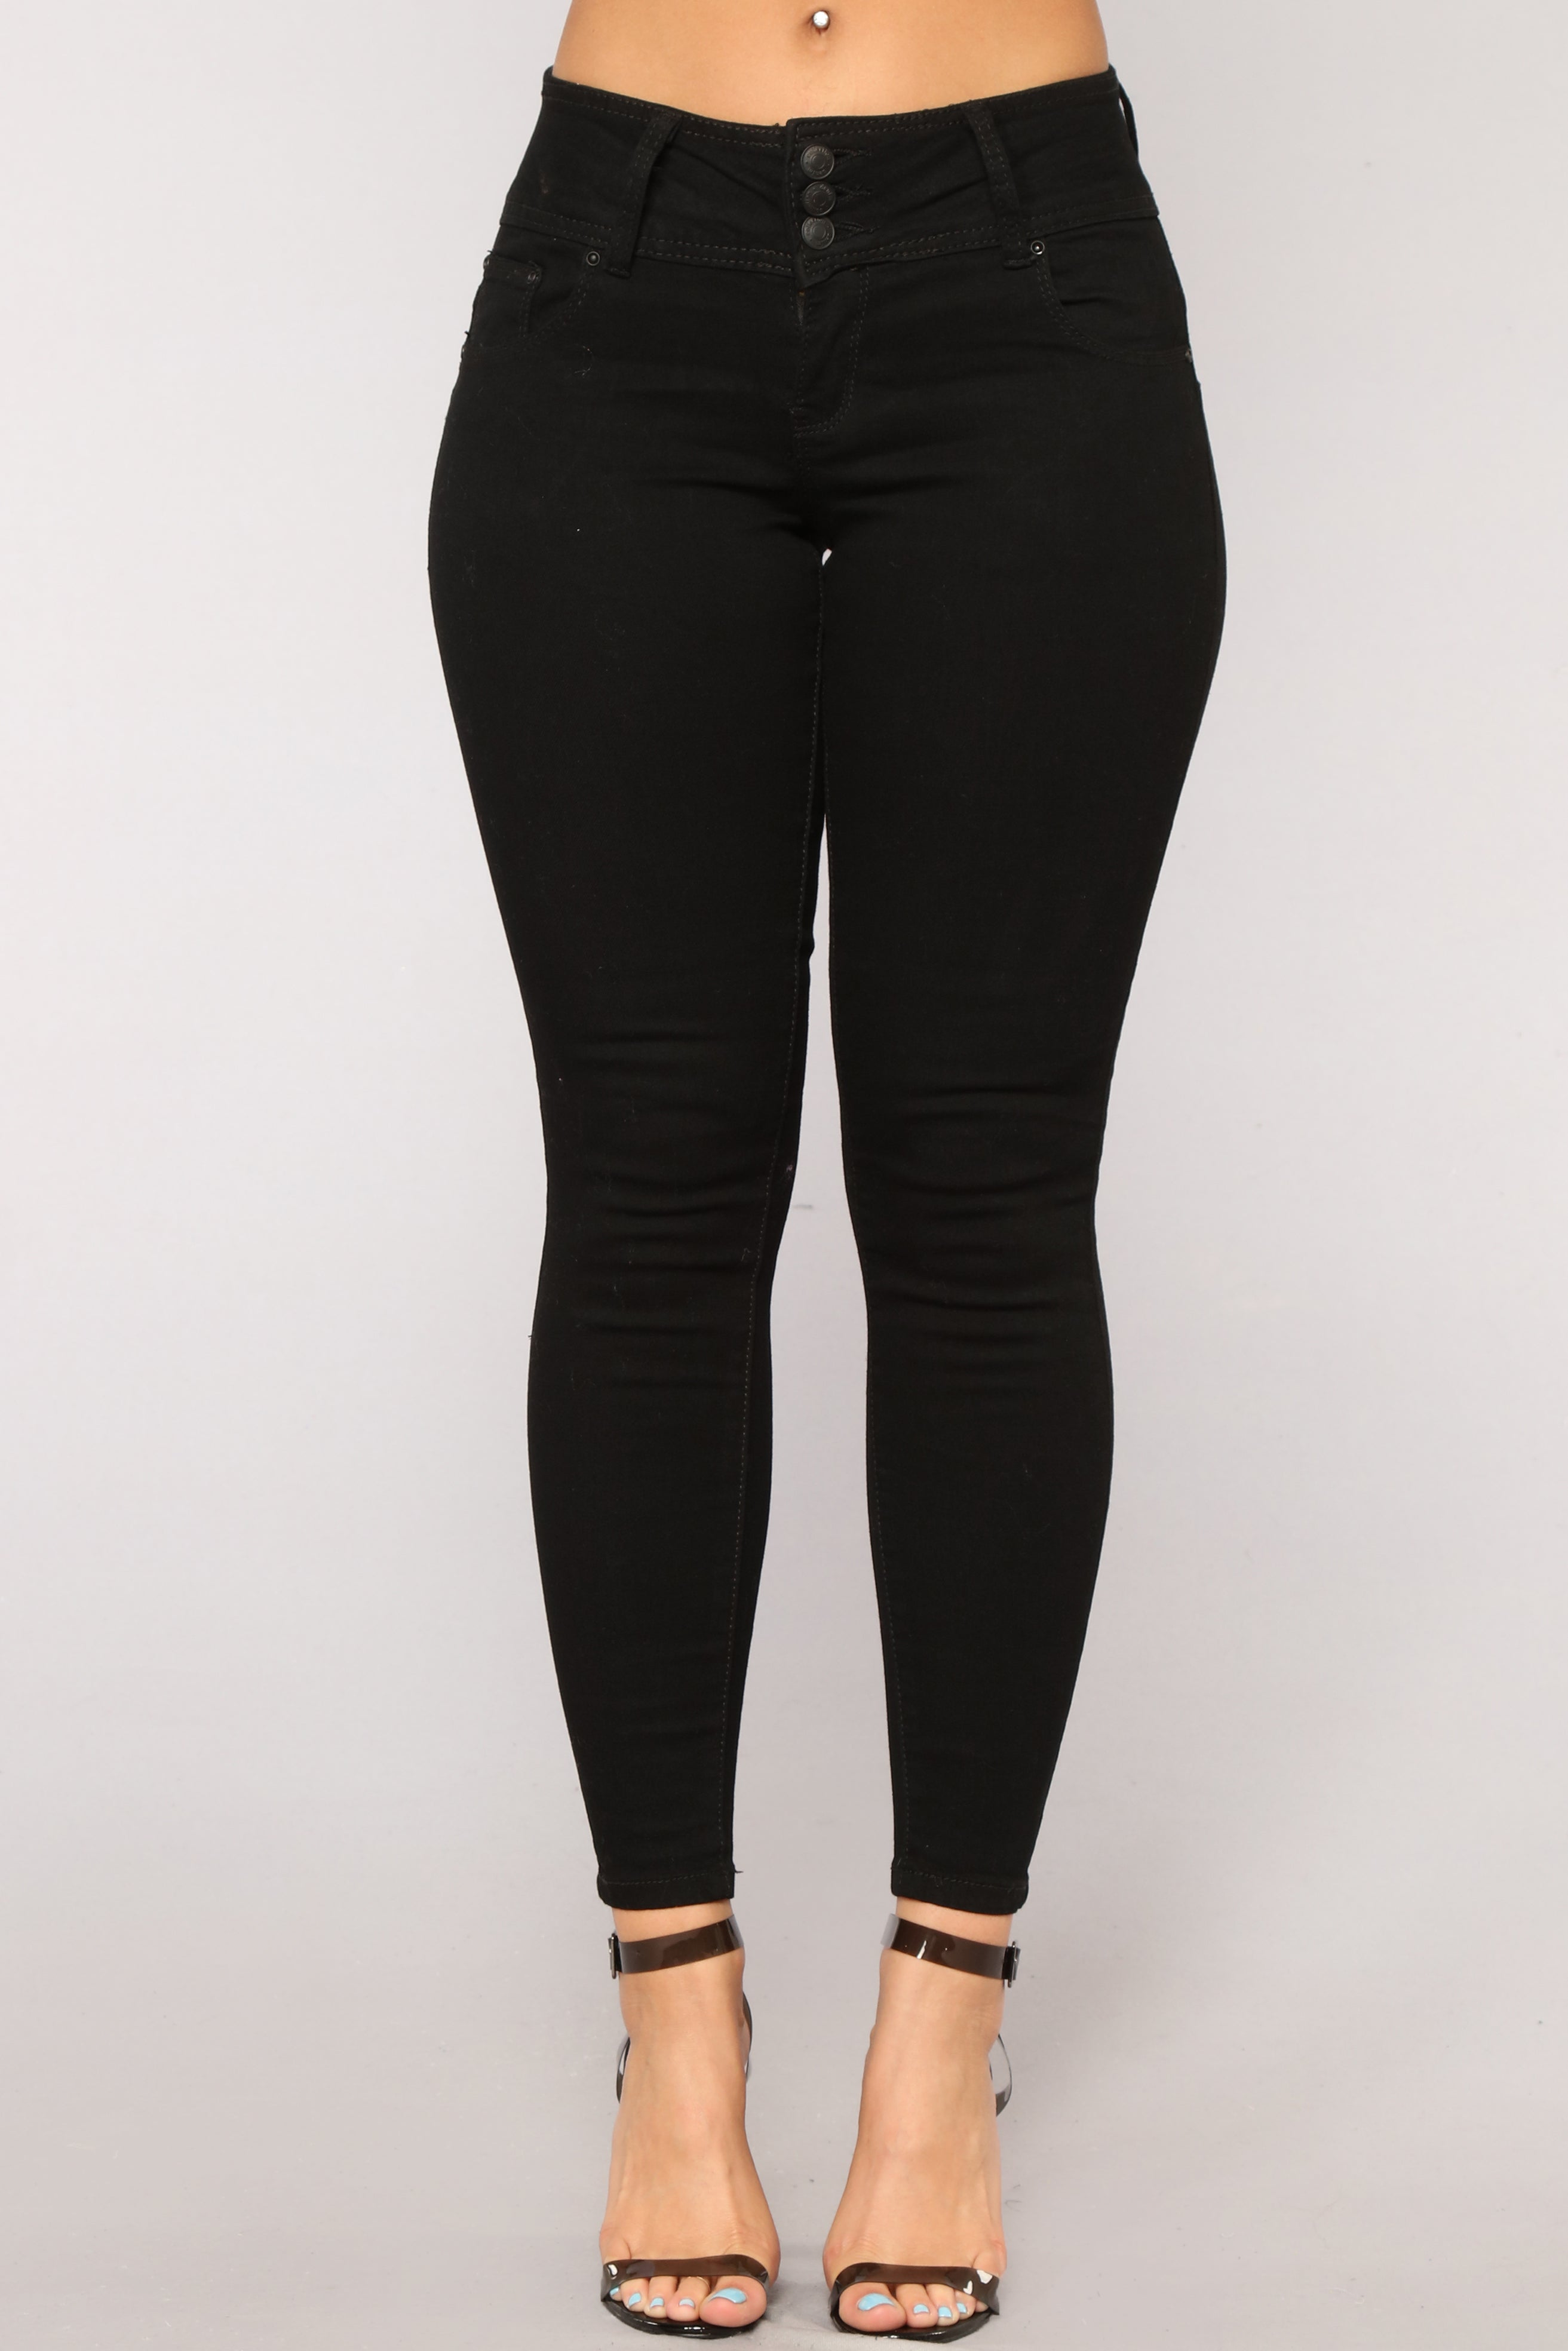 853ea68a7c9 Bridgette High Rise Ankle Jeans - Black